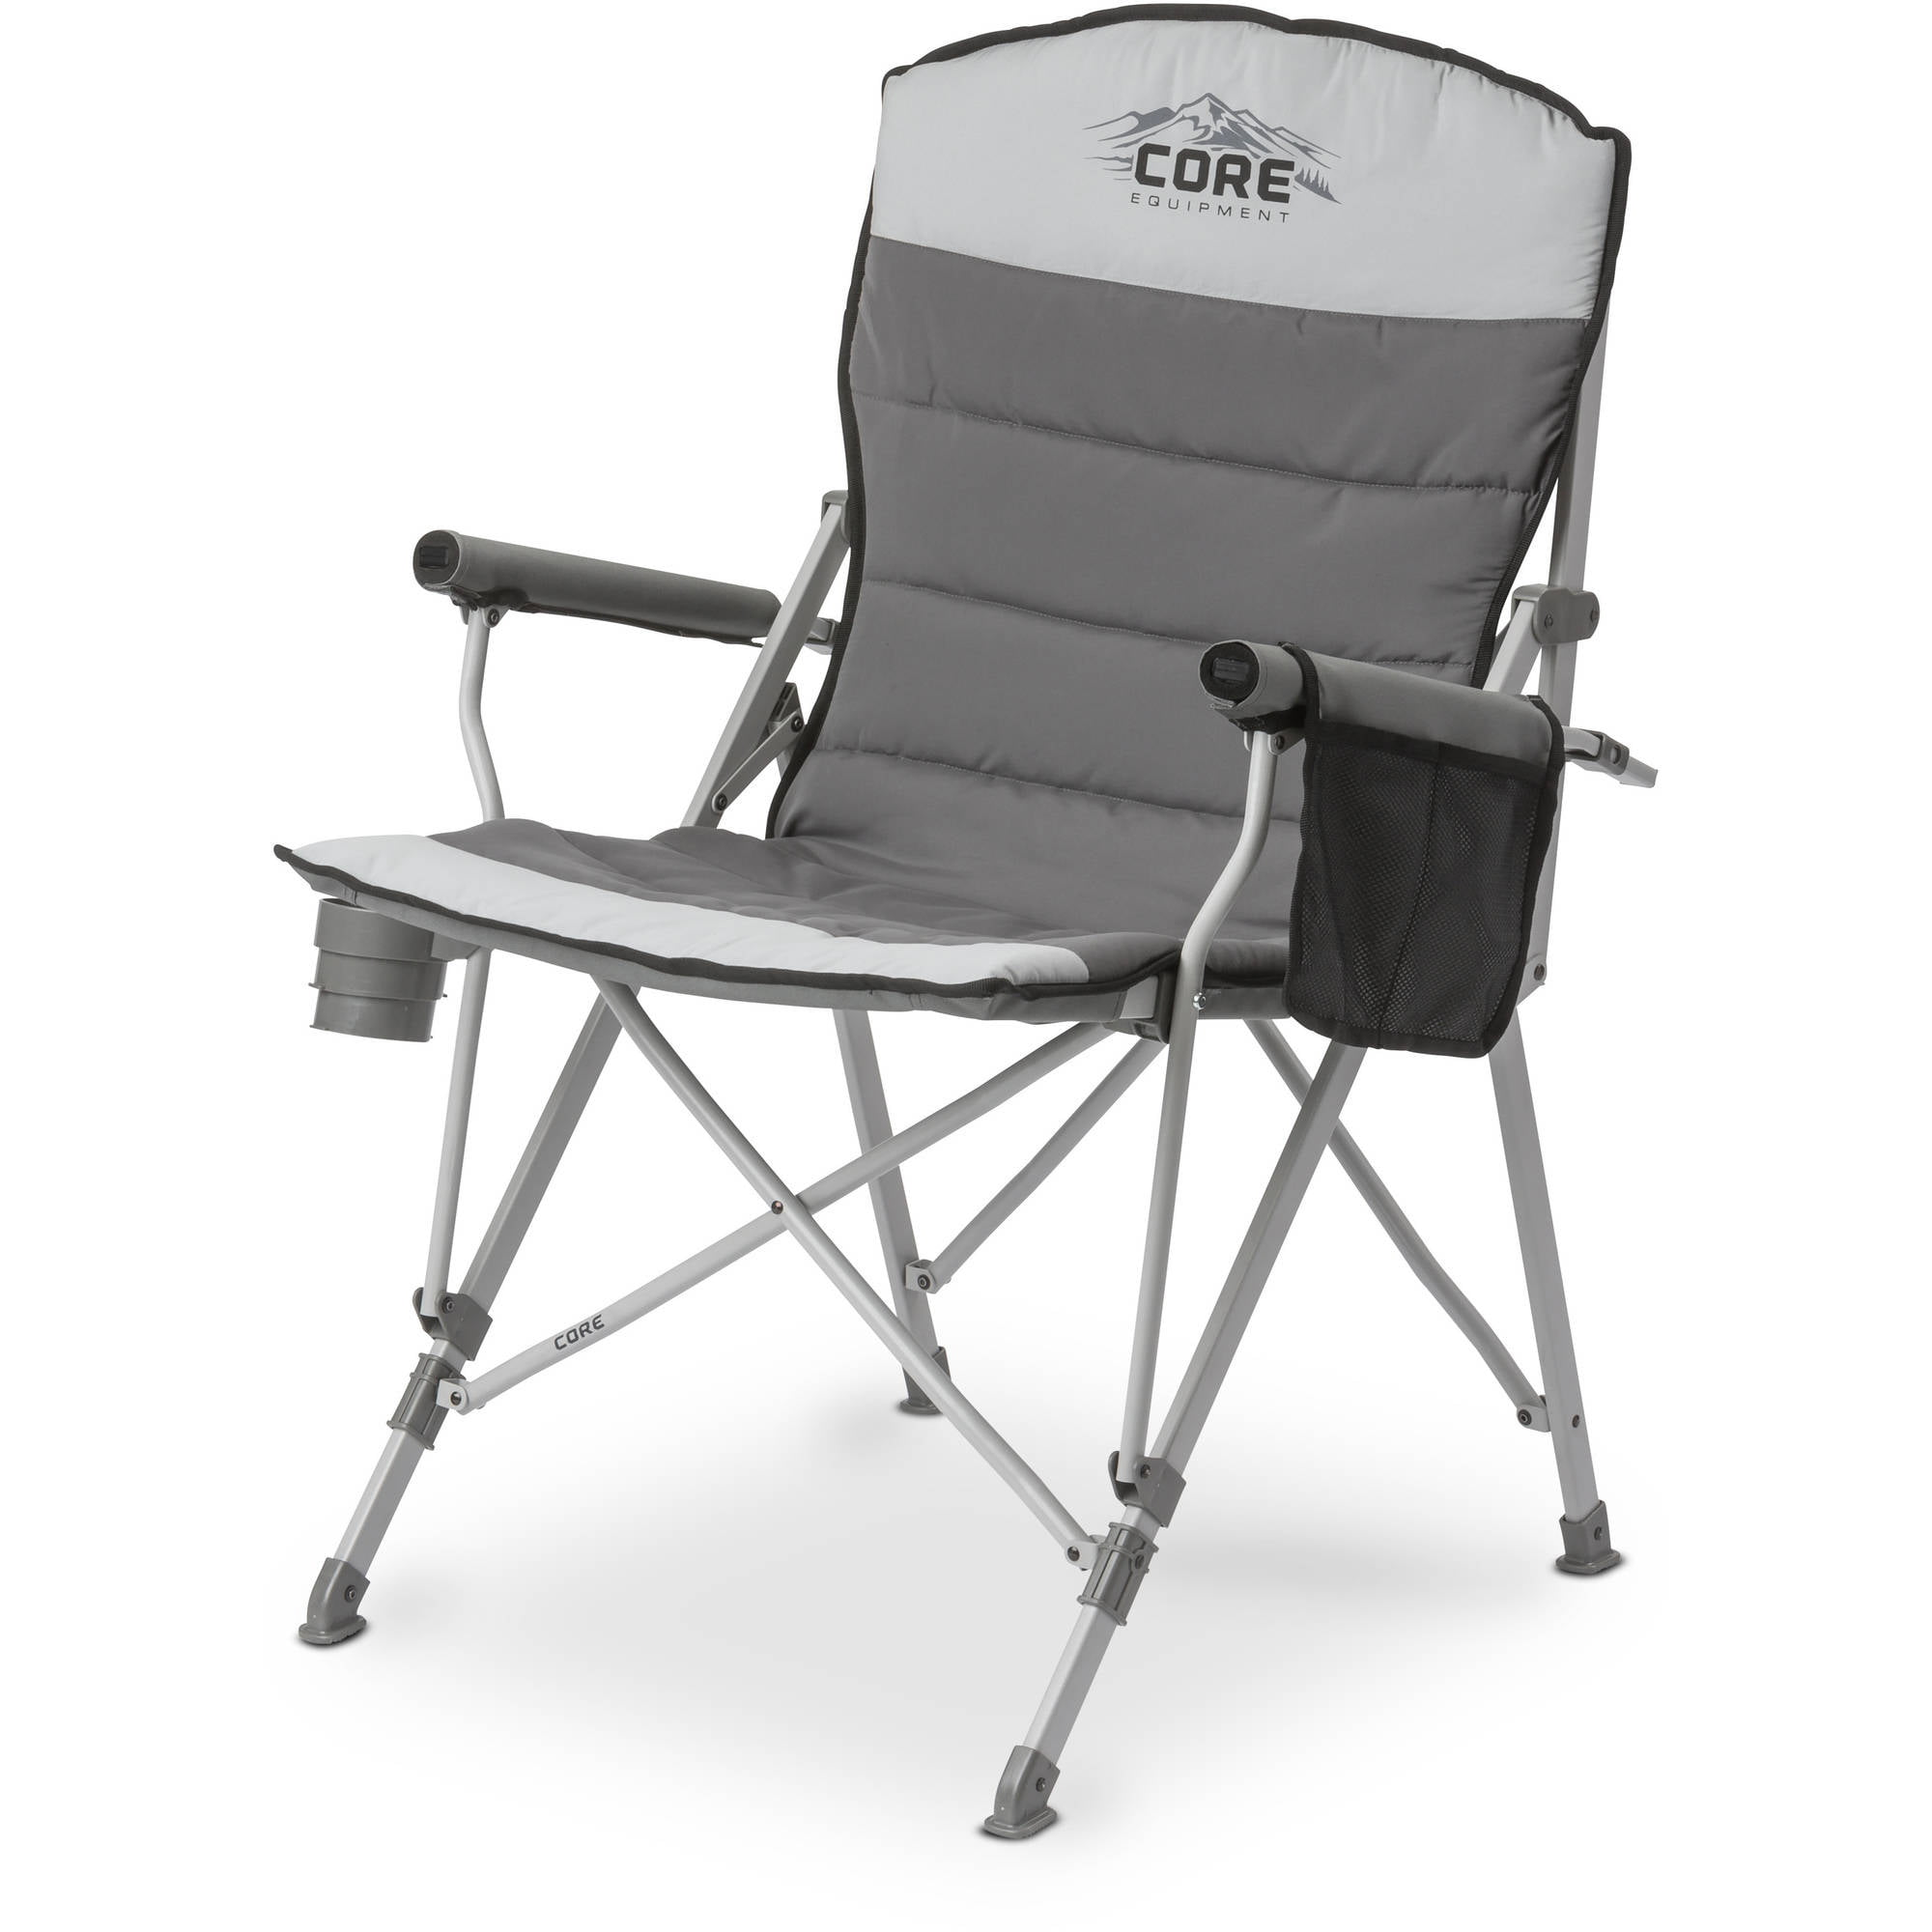 CORE Equipment Padded Hard Armchair by Elevate LLC